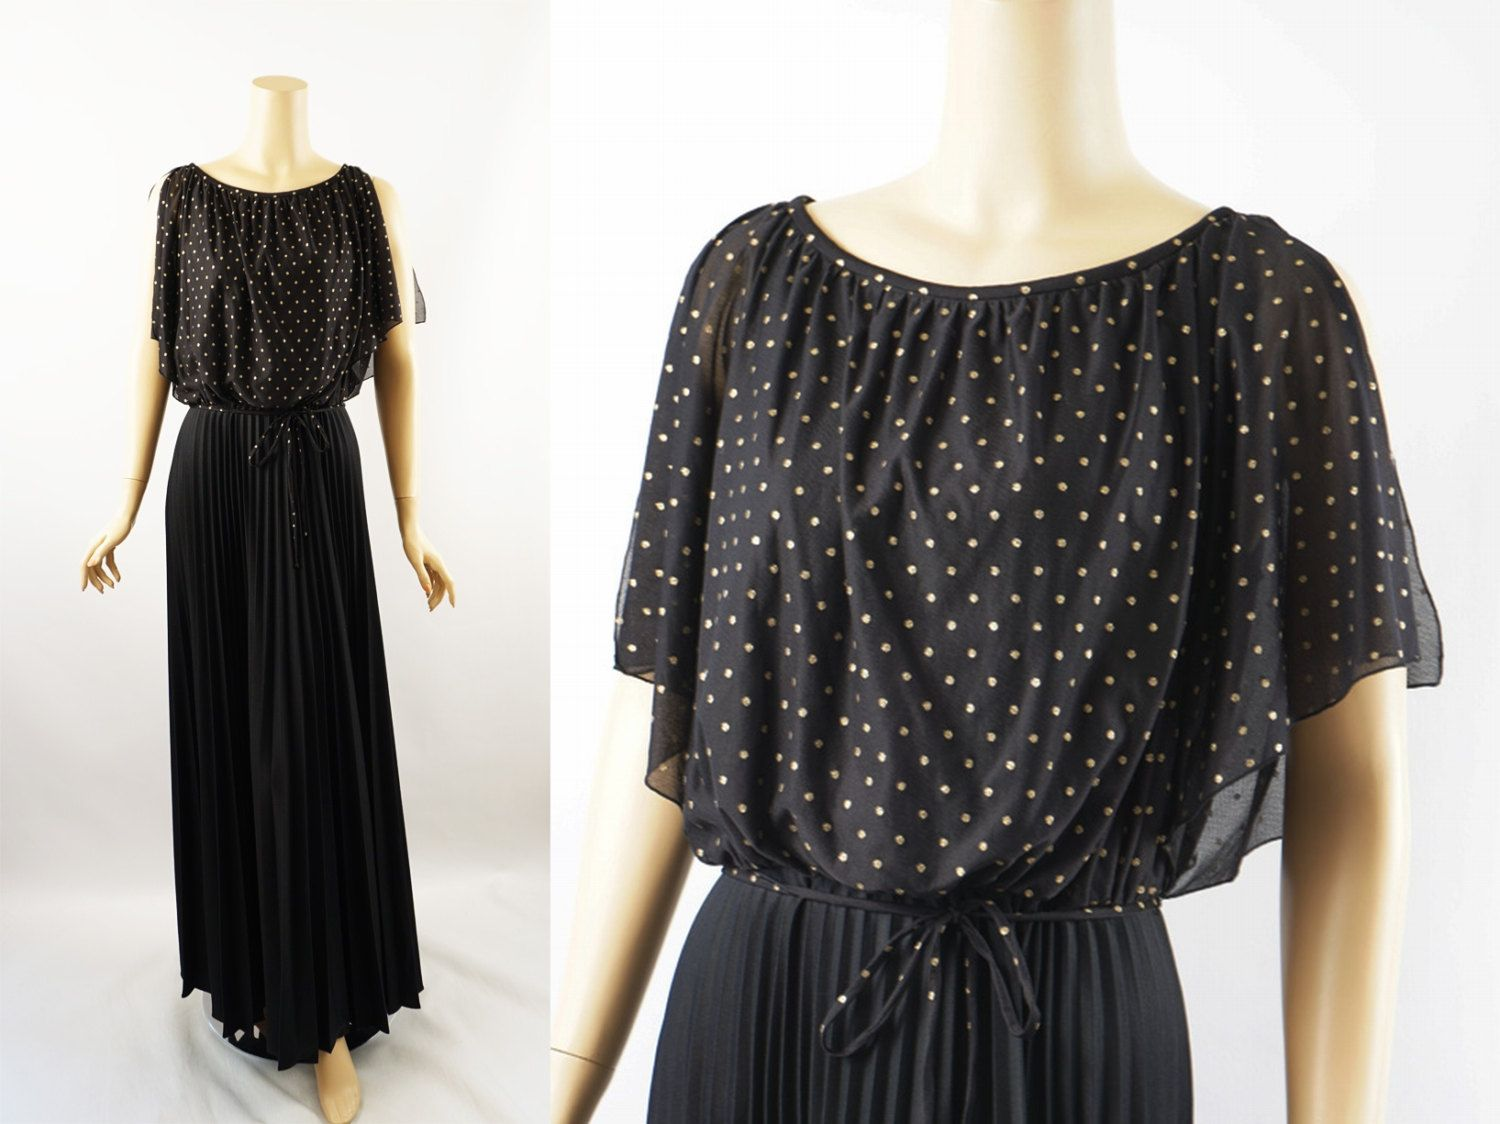 Vintage 1970s Party Gown Black Crystal Pleated Skirt with Gold Dotted Sheer Overlay by Amy Deb Sz 16 B36 by alleycatsvintage on Etsy